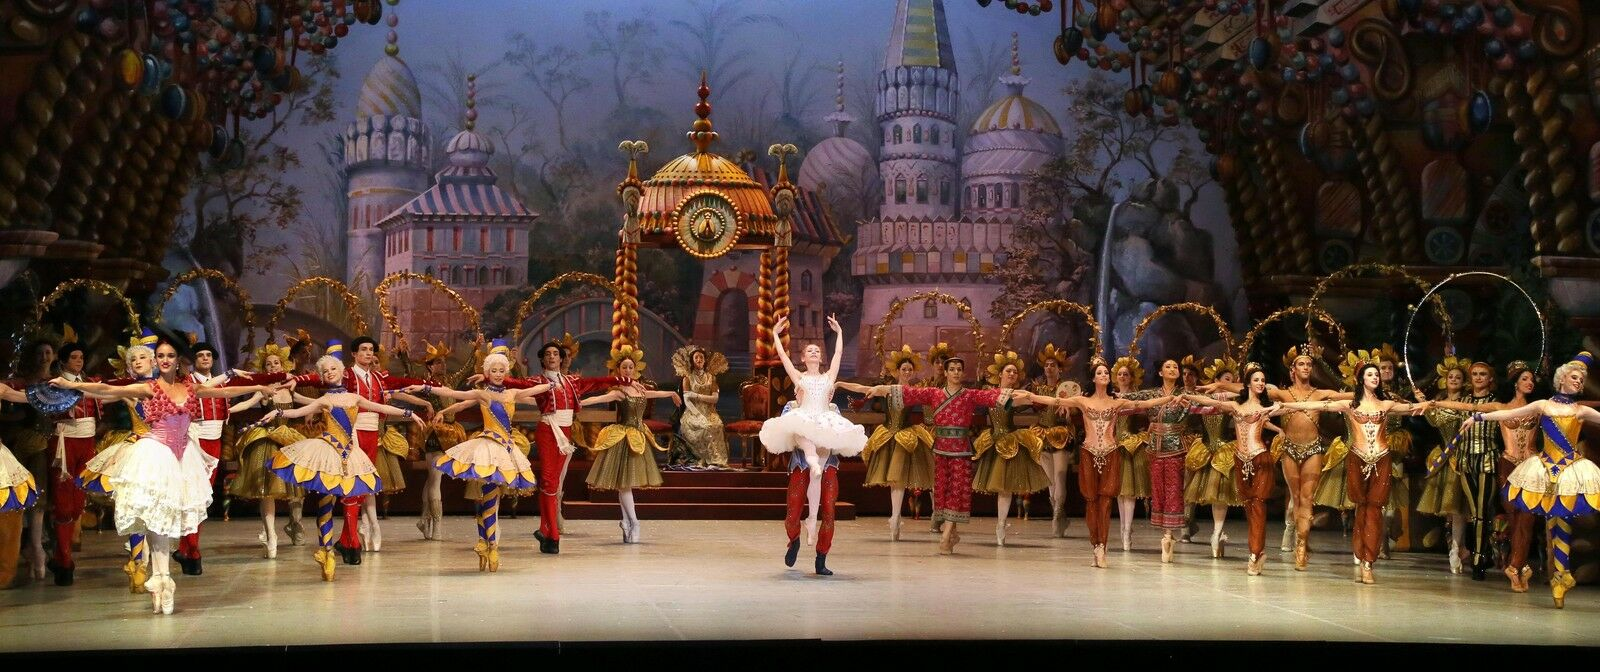 The Nutcracker Birmingham